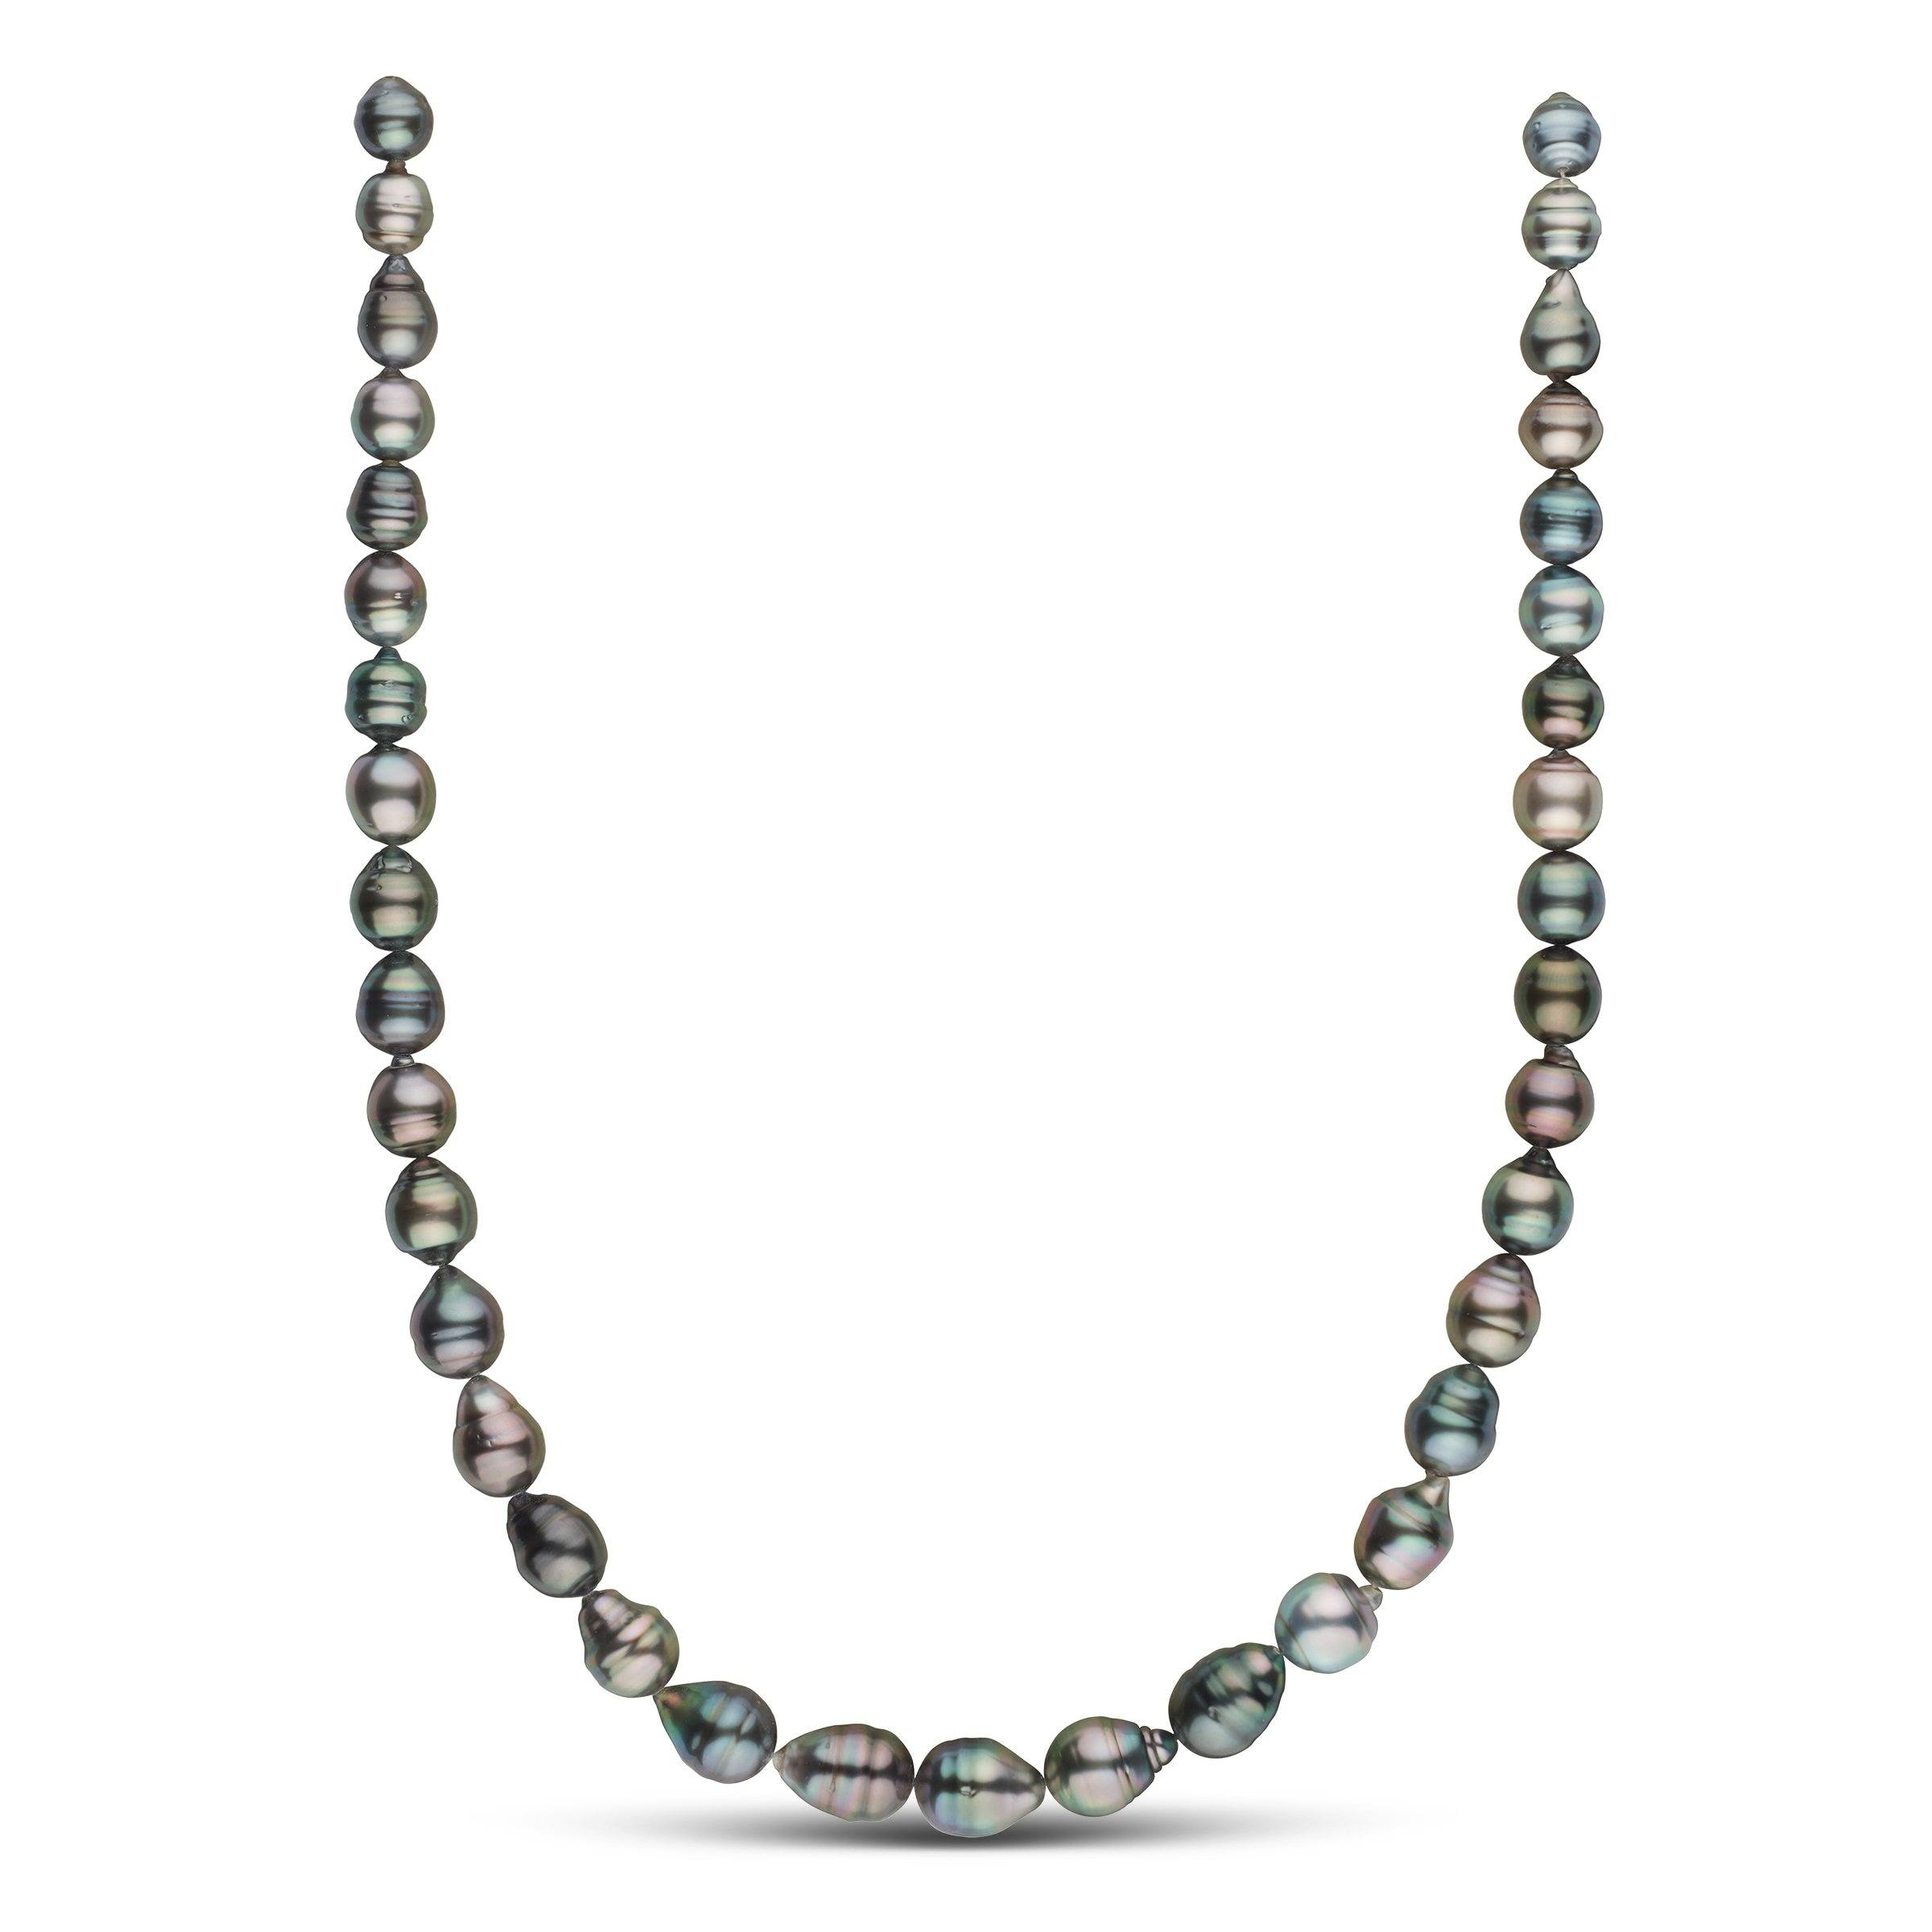 8.2-10.5 mm AAA Tahitian Baroque Pearl Necklace